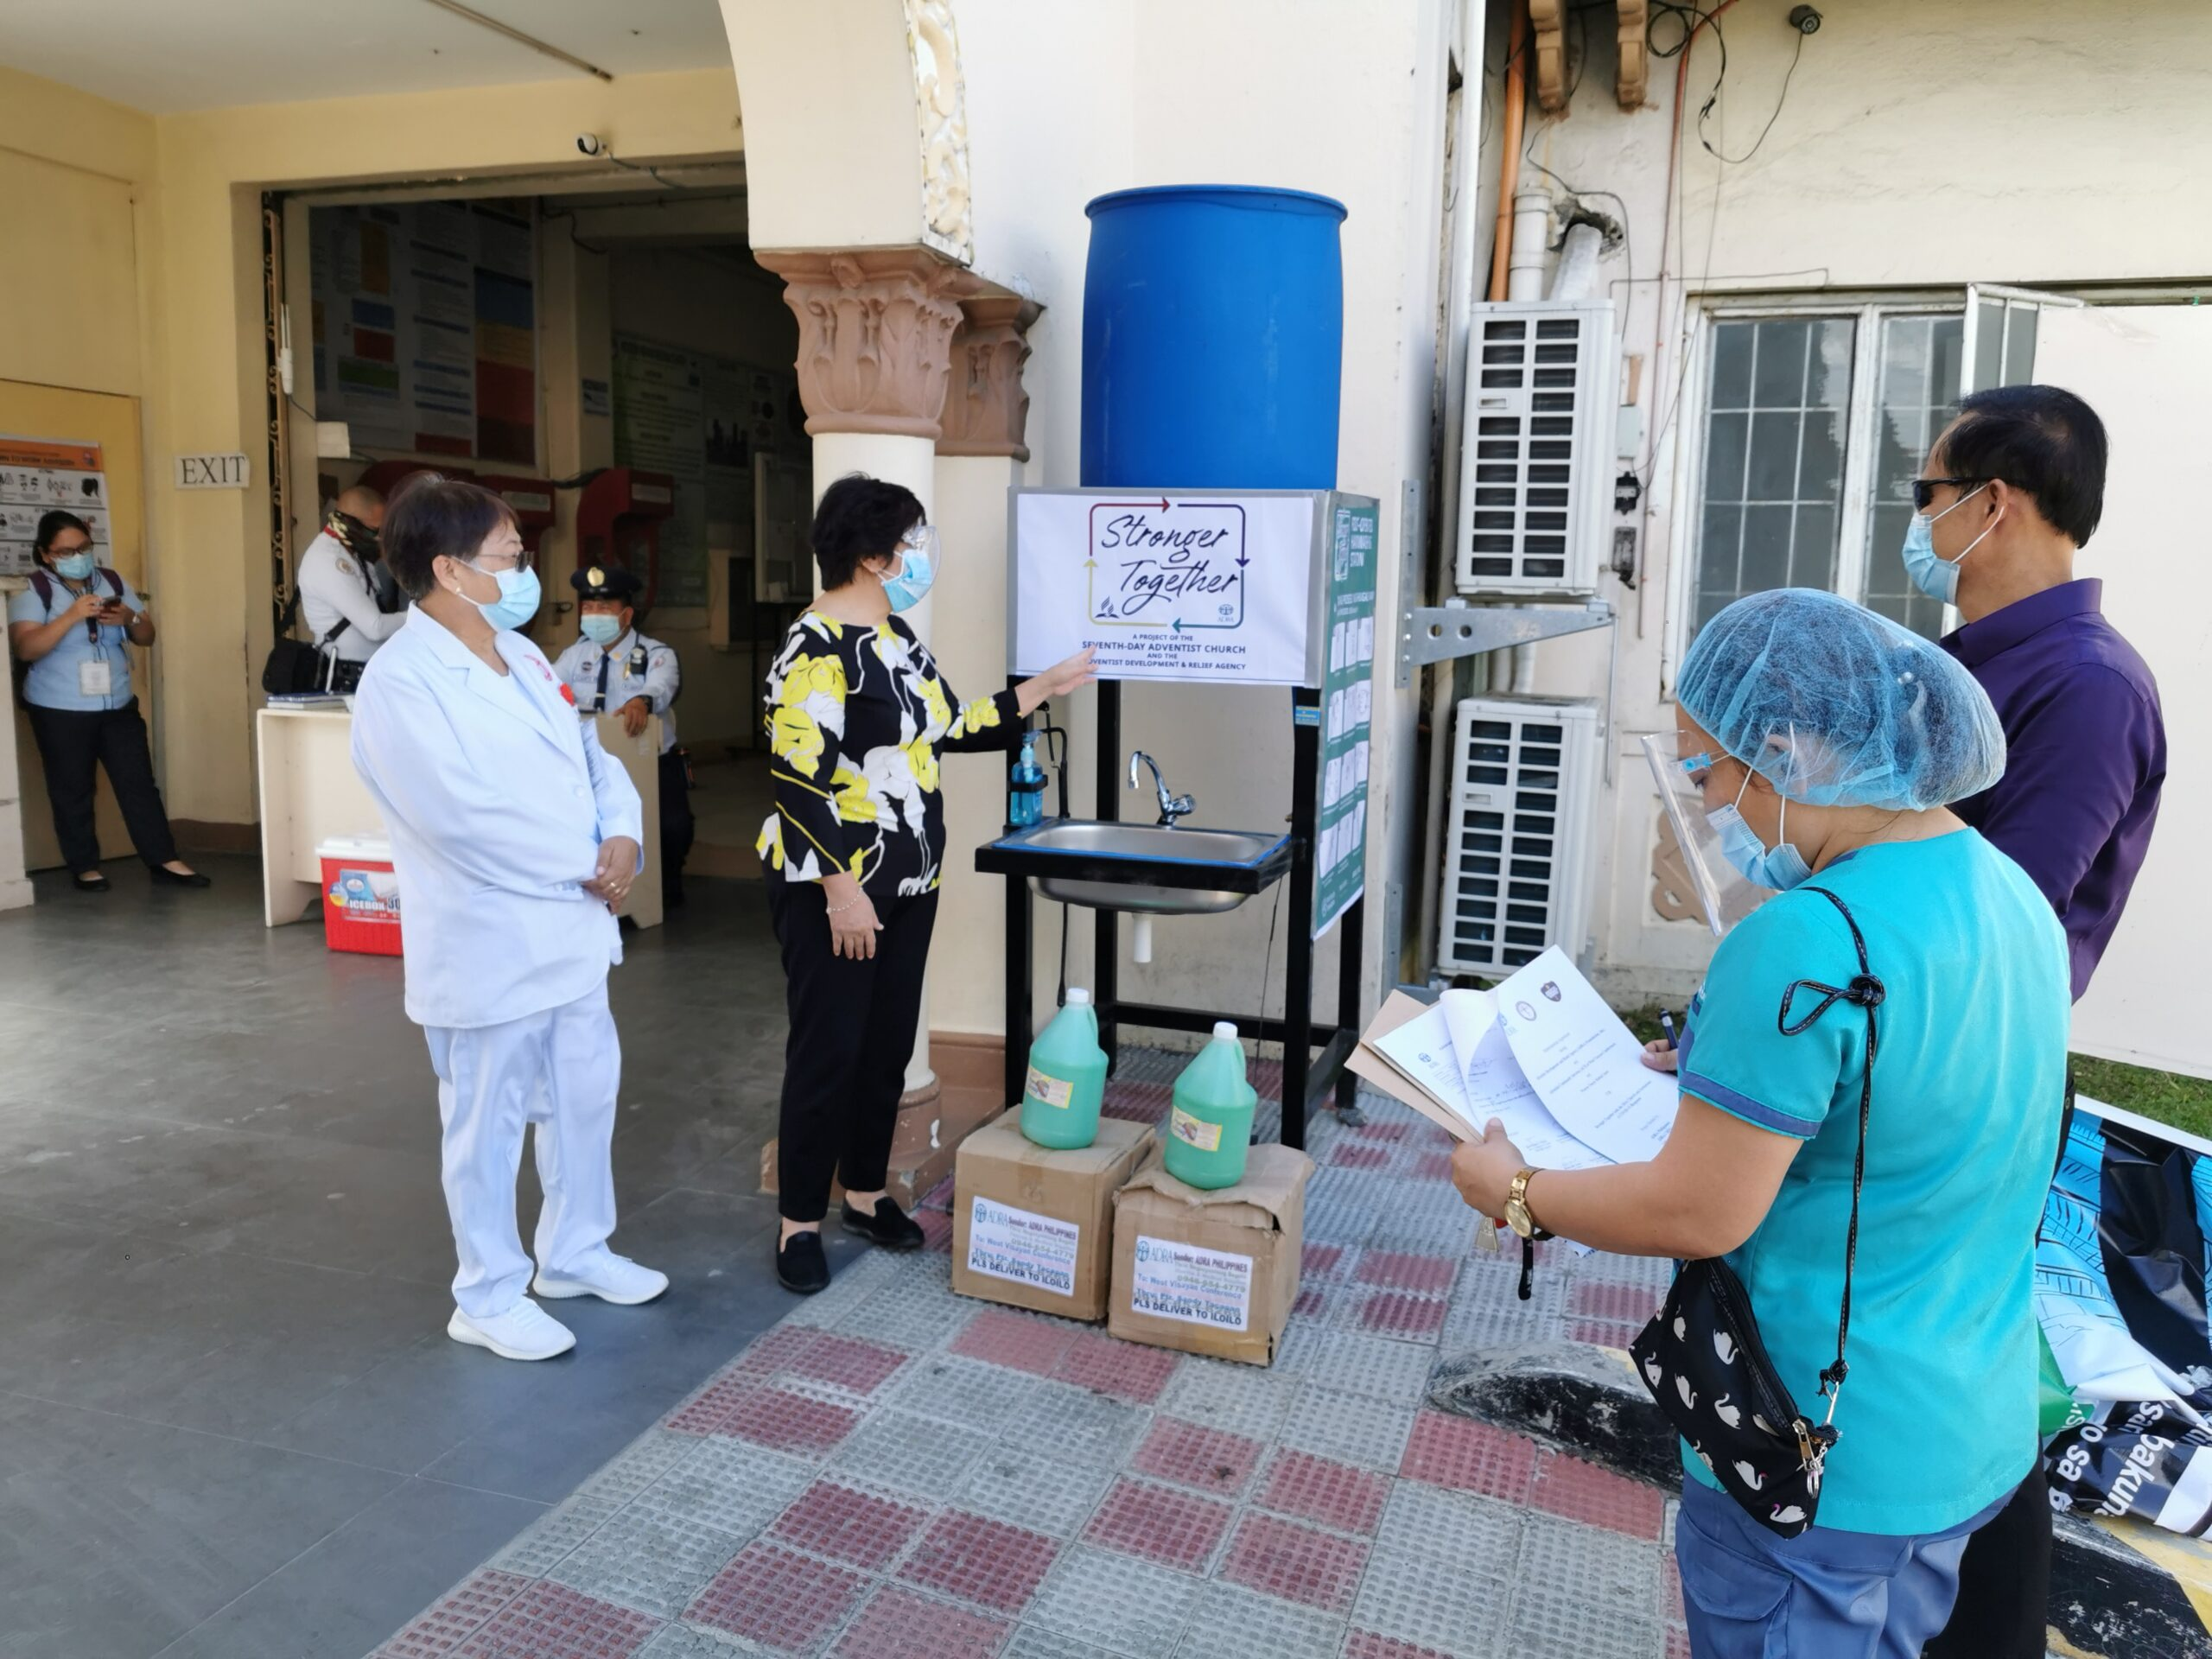 Hand-washing stations were provided by the Adventist Church and ADRA to local health facilities, like the Western Visayas Medical Center in Iloilo, Philippines. Demonstrations on how they were used were also included. (Photo courtesy of: ADRA in the Philippines)